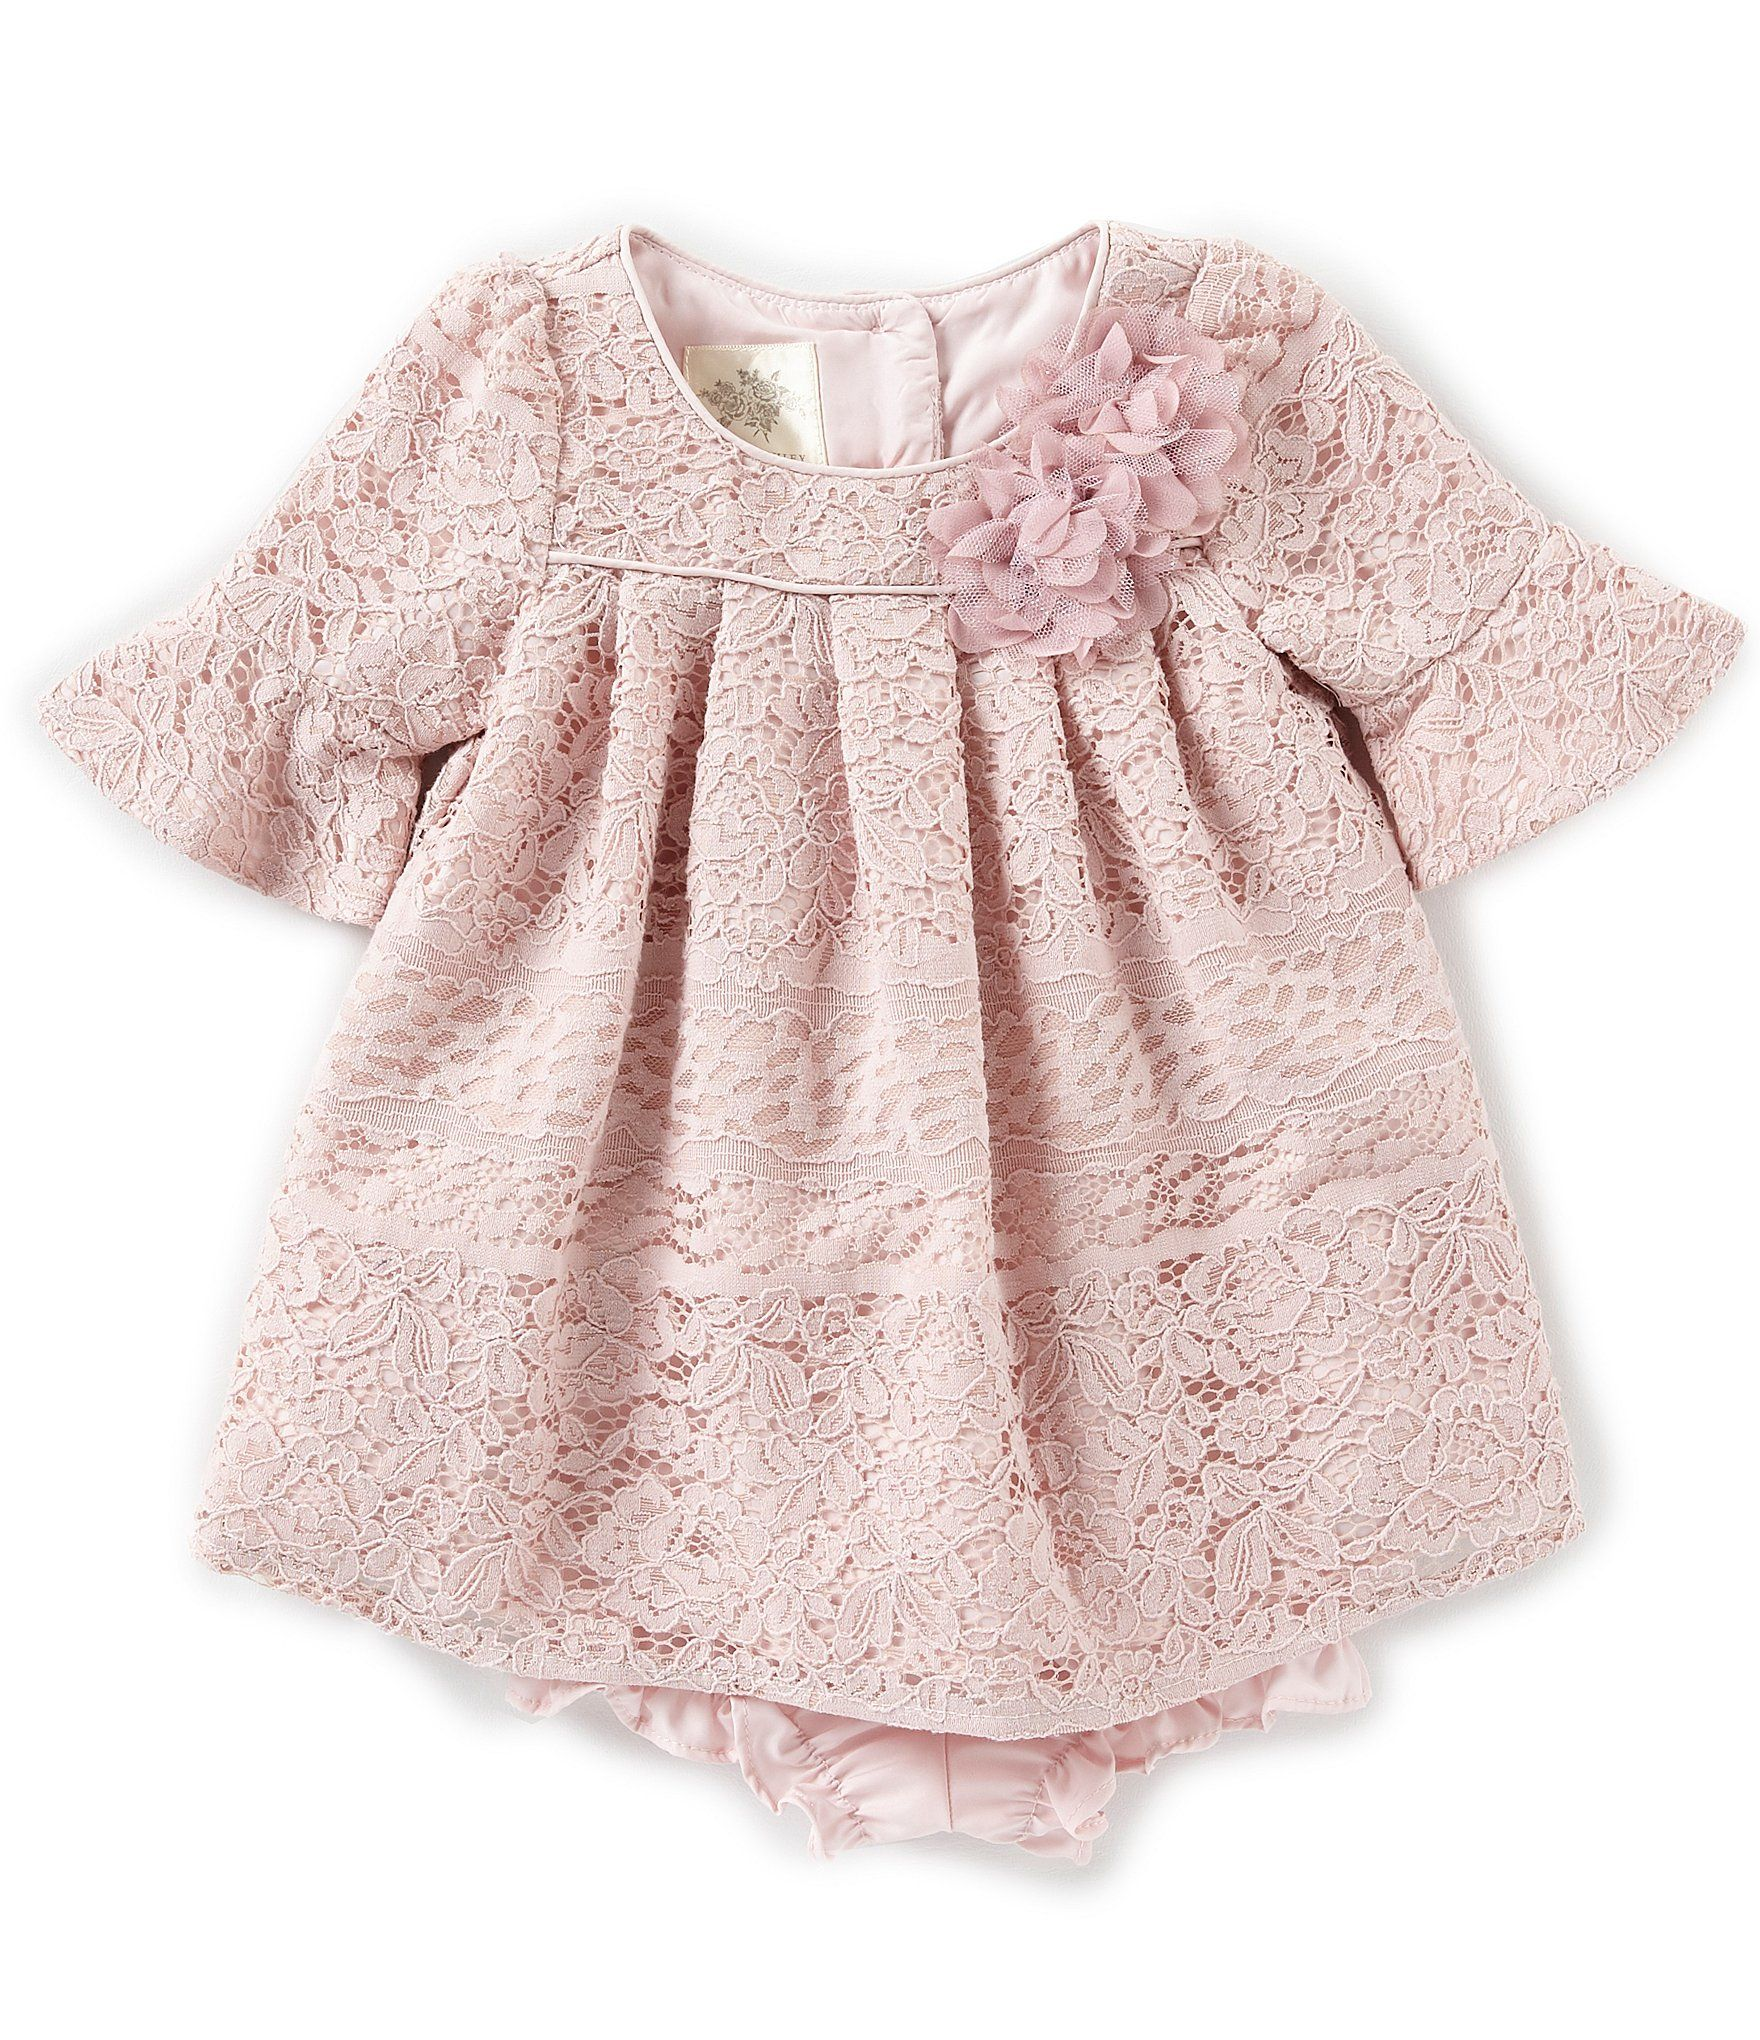 da5e32c9d6dfc Shop for Laura Ashley London Baby Girls Newborn-24 Months Bell-Sleeve Lace-Overlay  A-Line Dress at Dillards.com. Visit Dillards.com to find clothing, ...